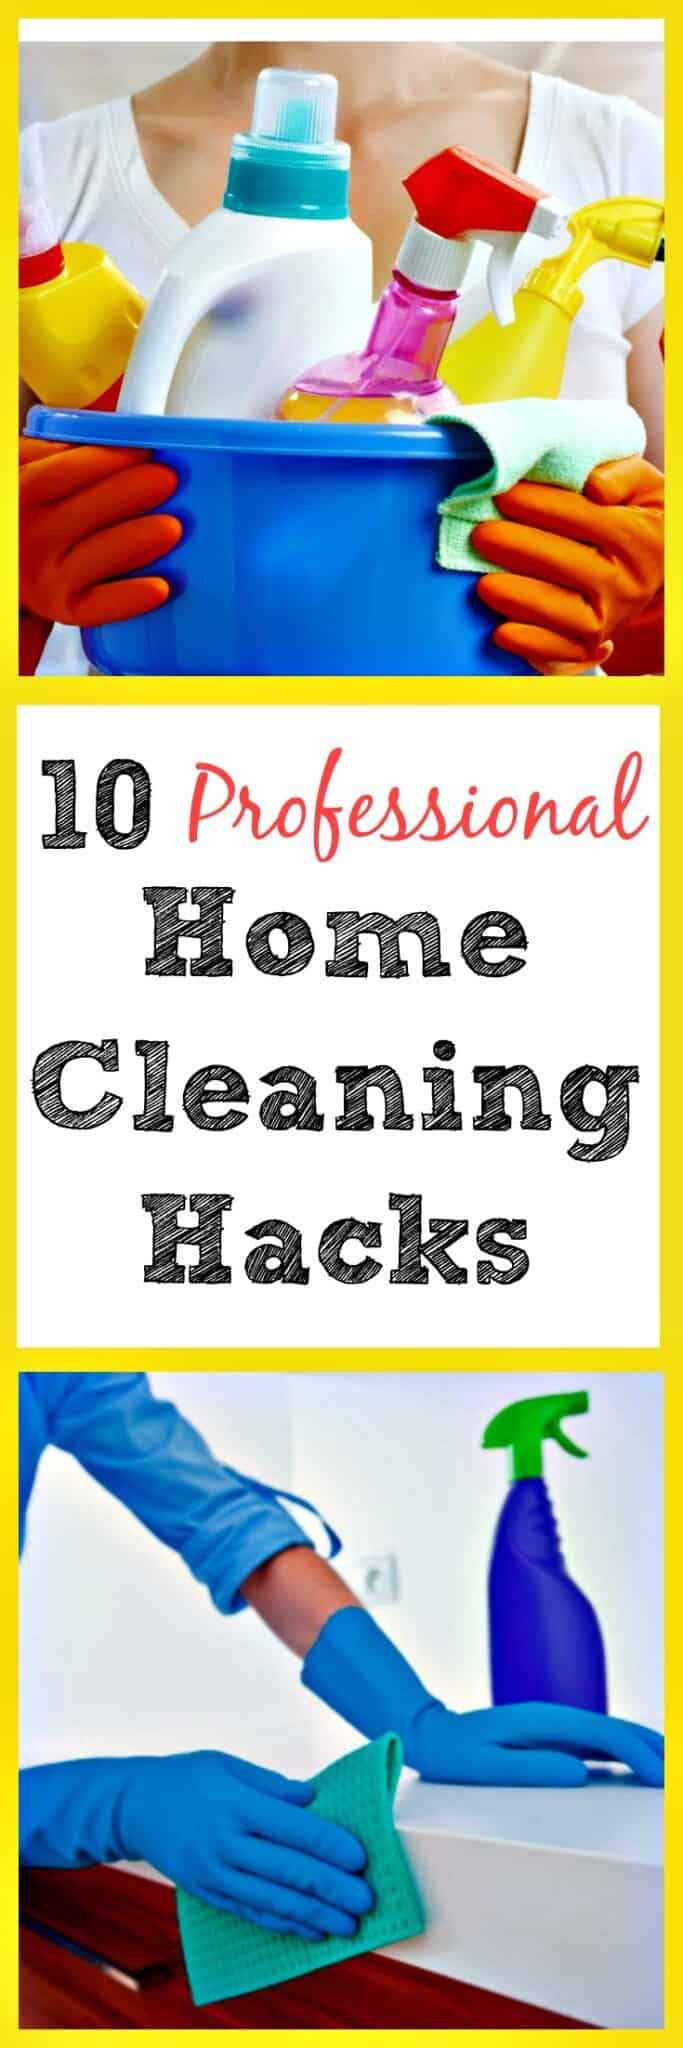 10 Professional Home Cleaning Hacks - These are so clever! | via @HousewifeHowTos